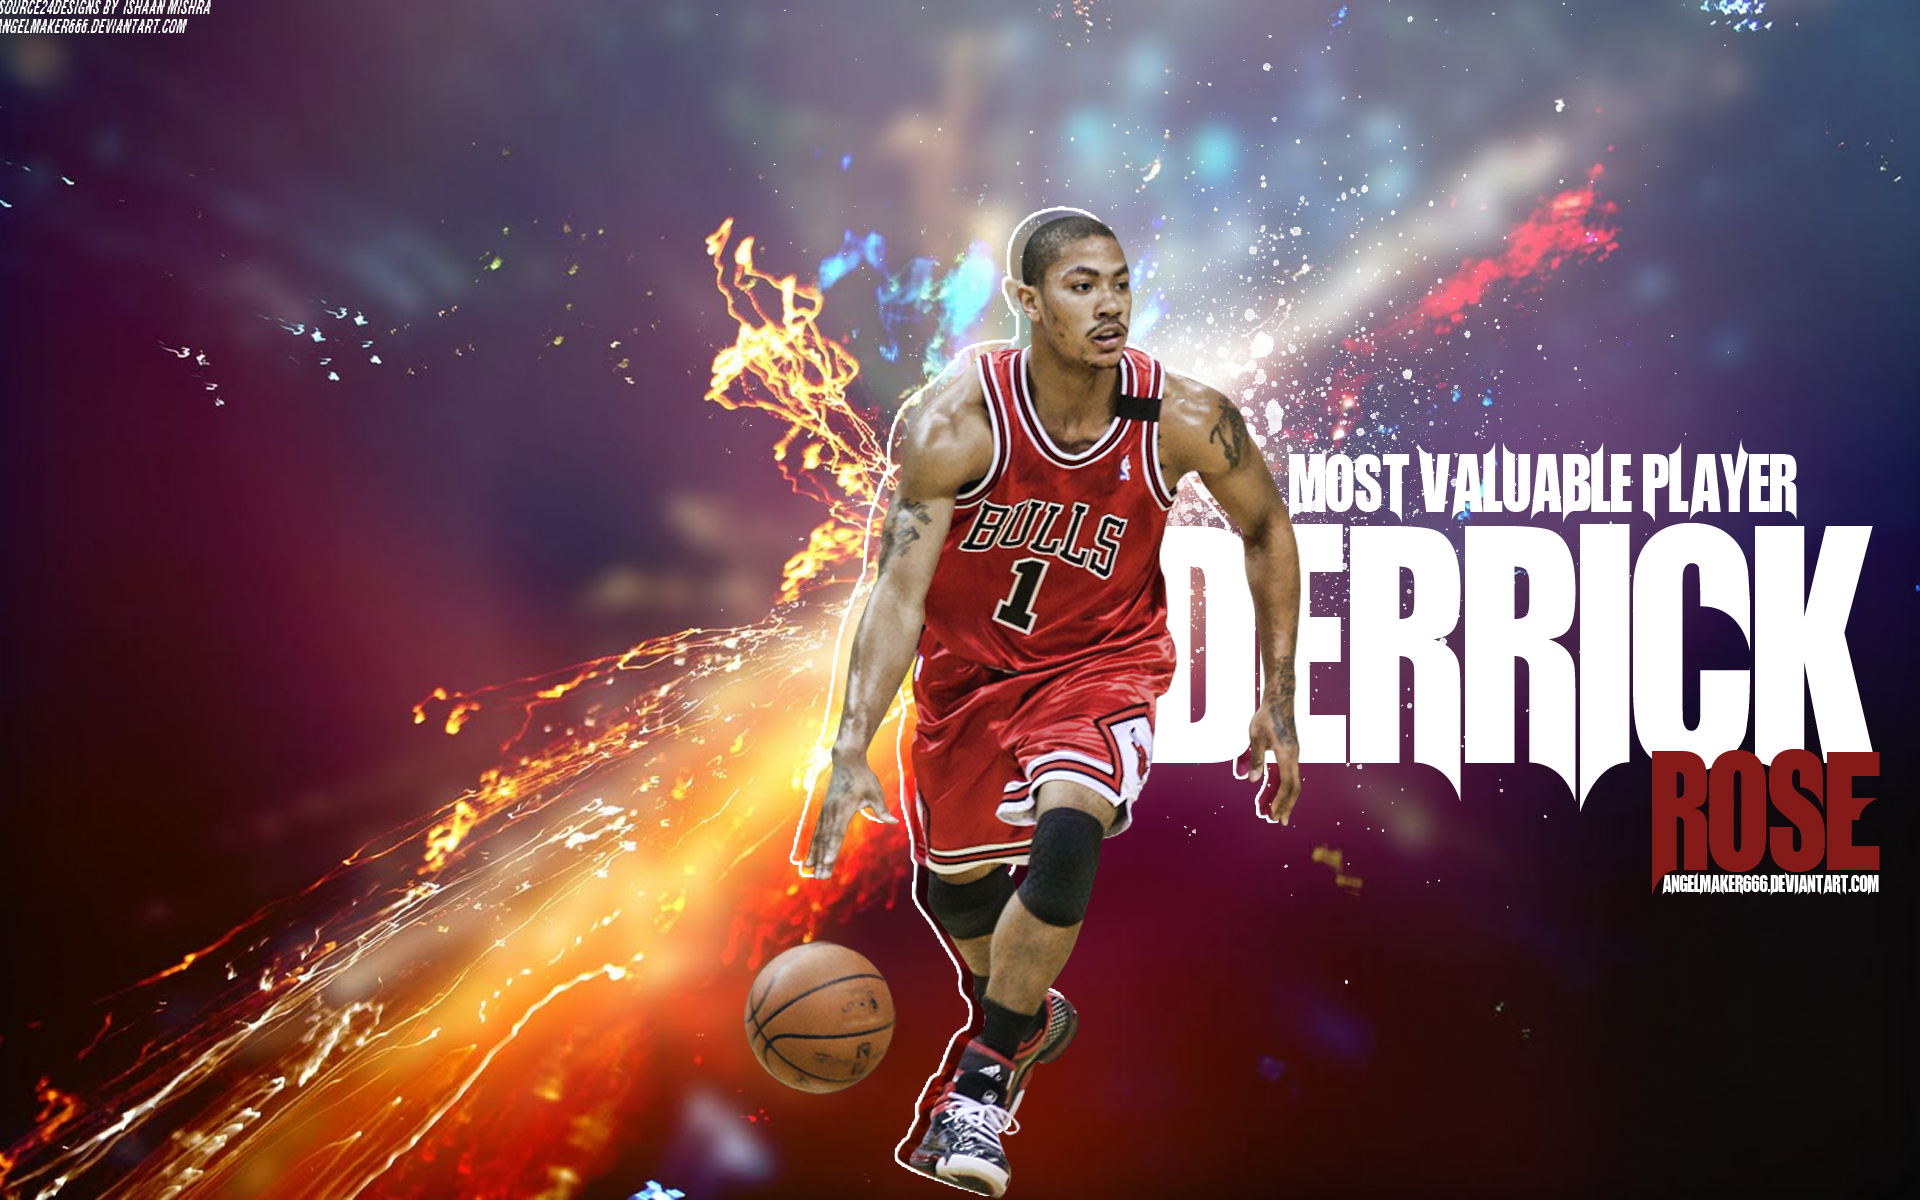 derrick_rose_mvp_wallpaper_by_angelmaker666-d3e3kv1